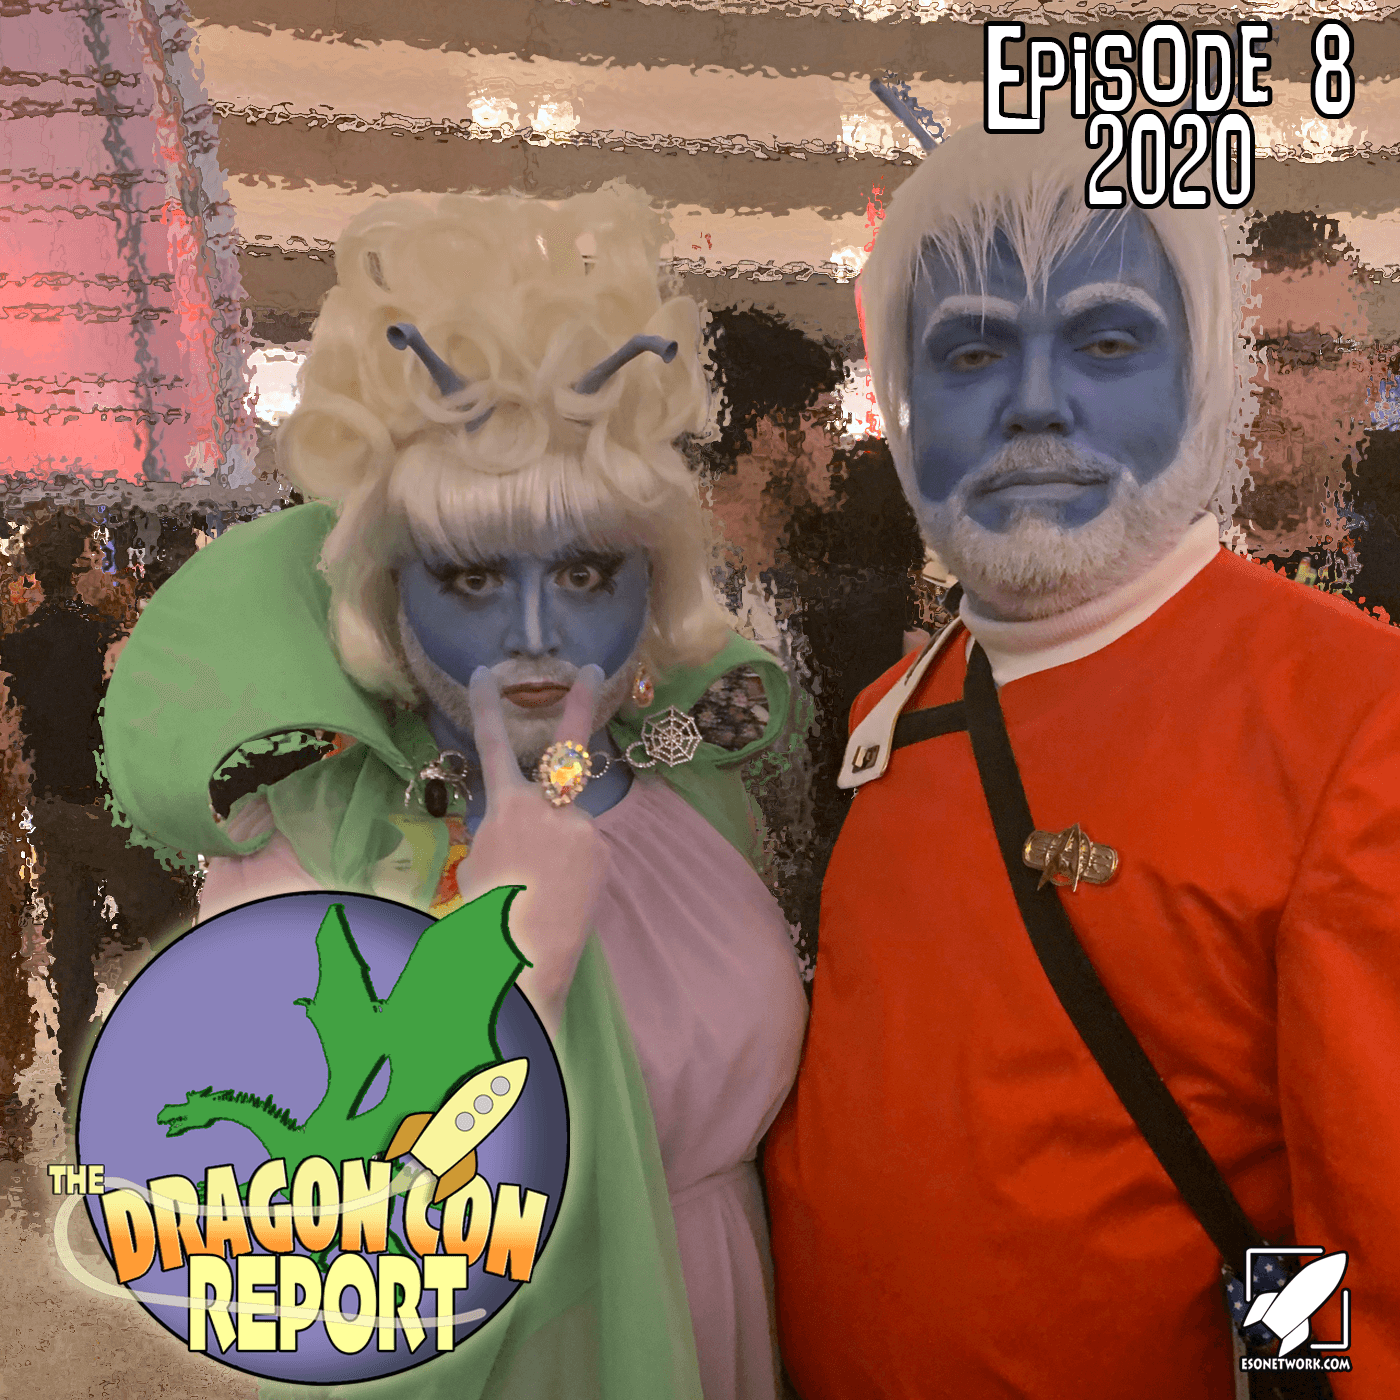 The 2020 Dragon Con Report Ep 8